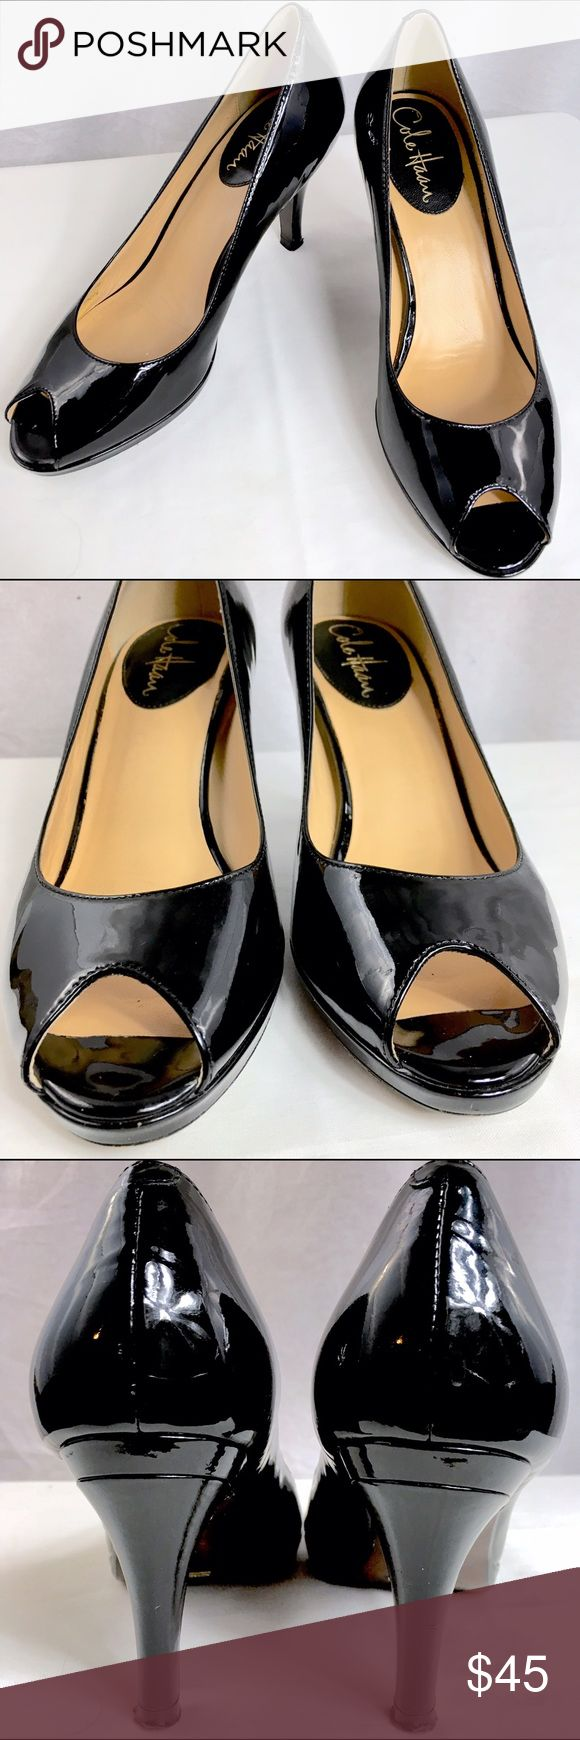 Cole Haan NIKEAIR Patent Peep Toe Black Pumps 7.5B These black leather pumps are in very good condition. They have been gently loved. They are not perfect, but they are in such a good condition that they would still go great with any wardrobe! The heel measures 2 3/4 inches, however, there is a 1/2 inch platform toward the toe. Cole Haan Shoes Heels